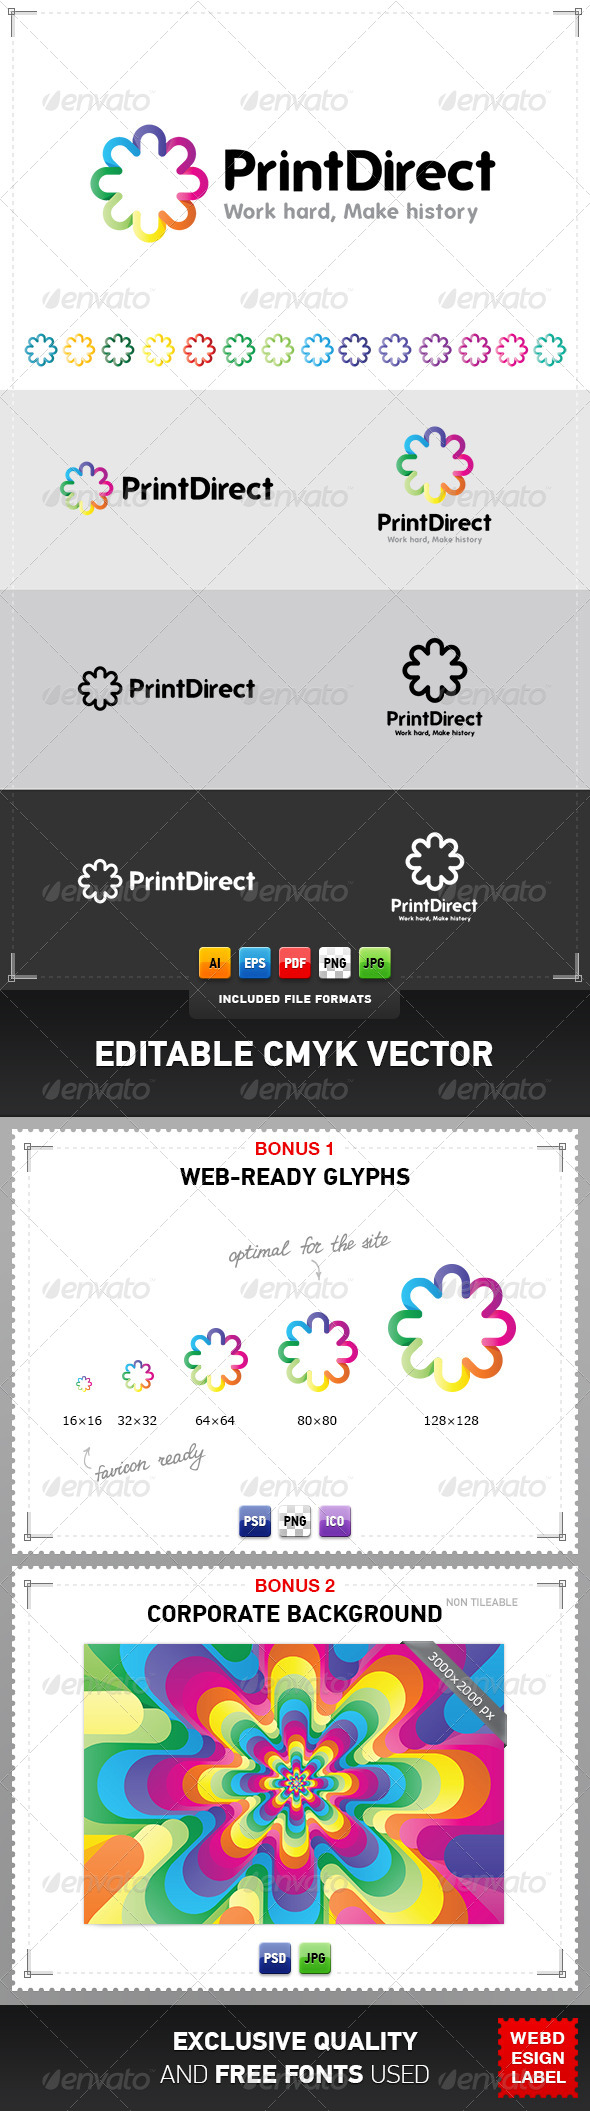 Print Direct Logo - Abstract Logo Templates